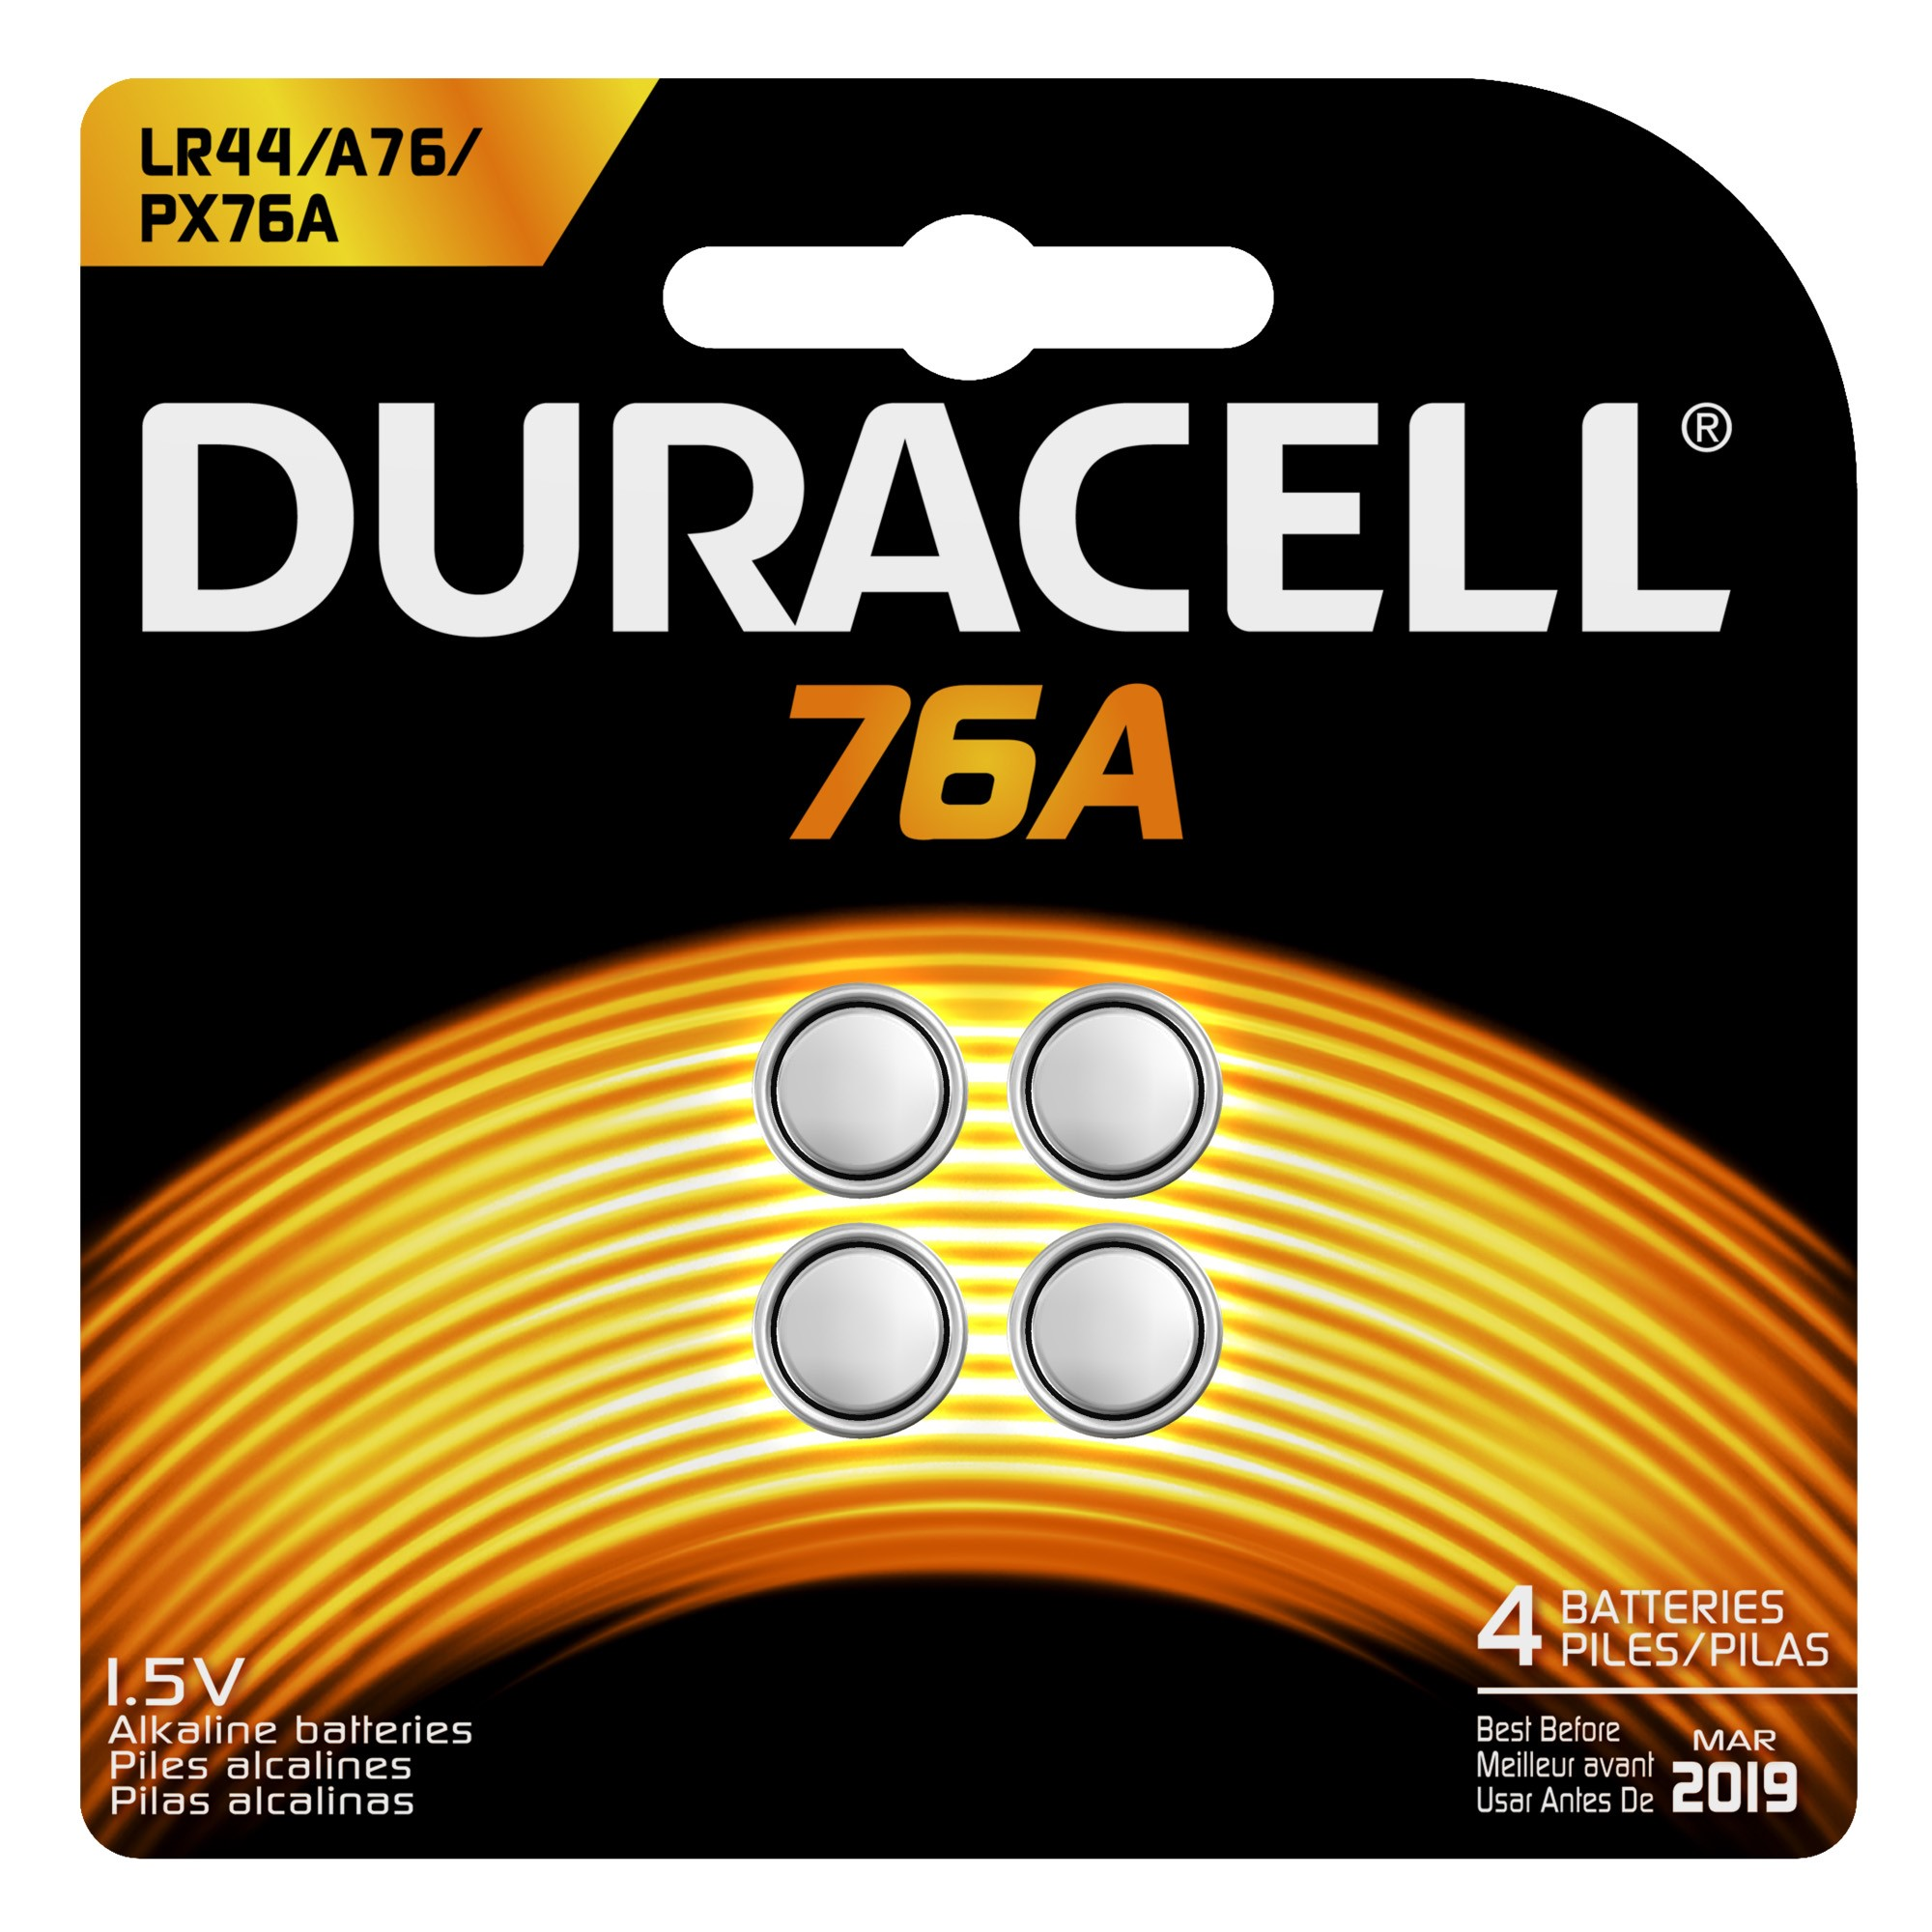 Duracell Alkaline 76A, 4 Count